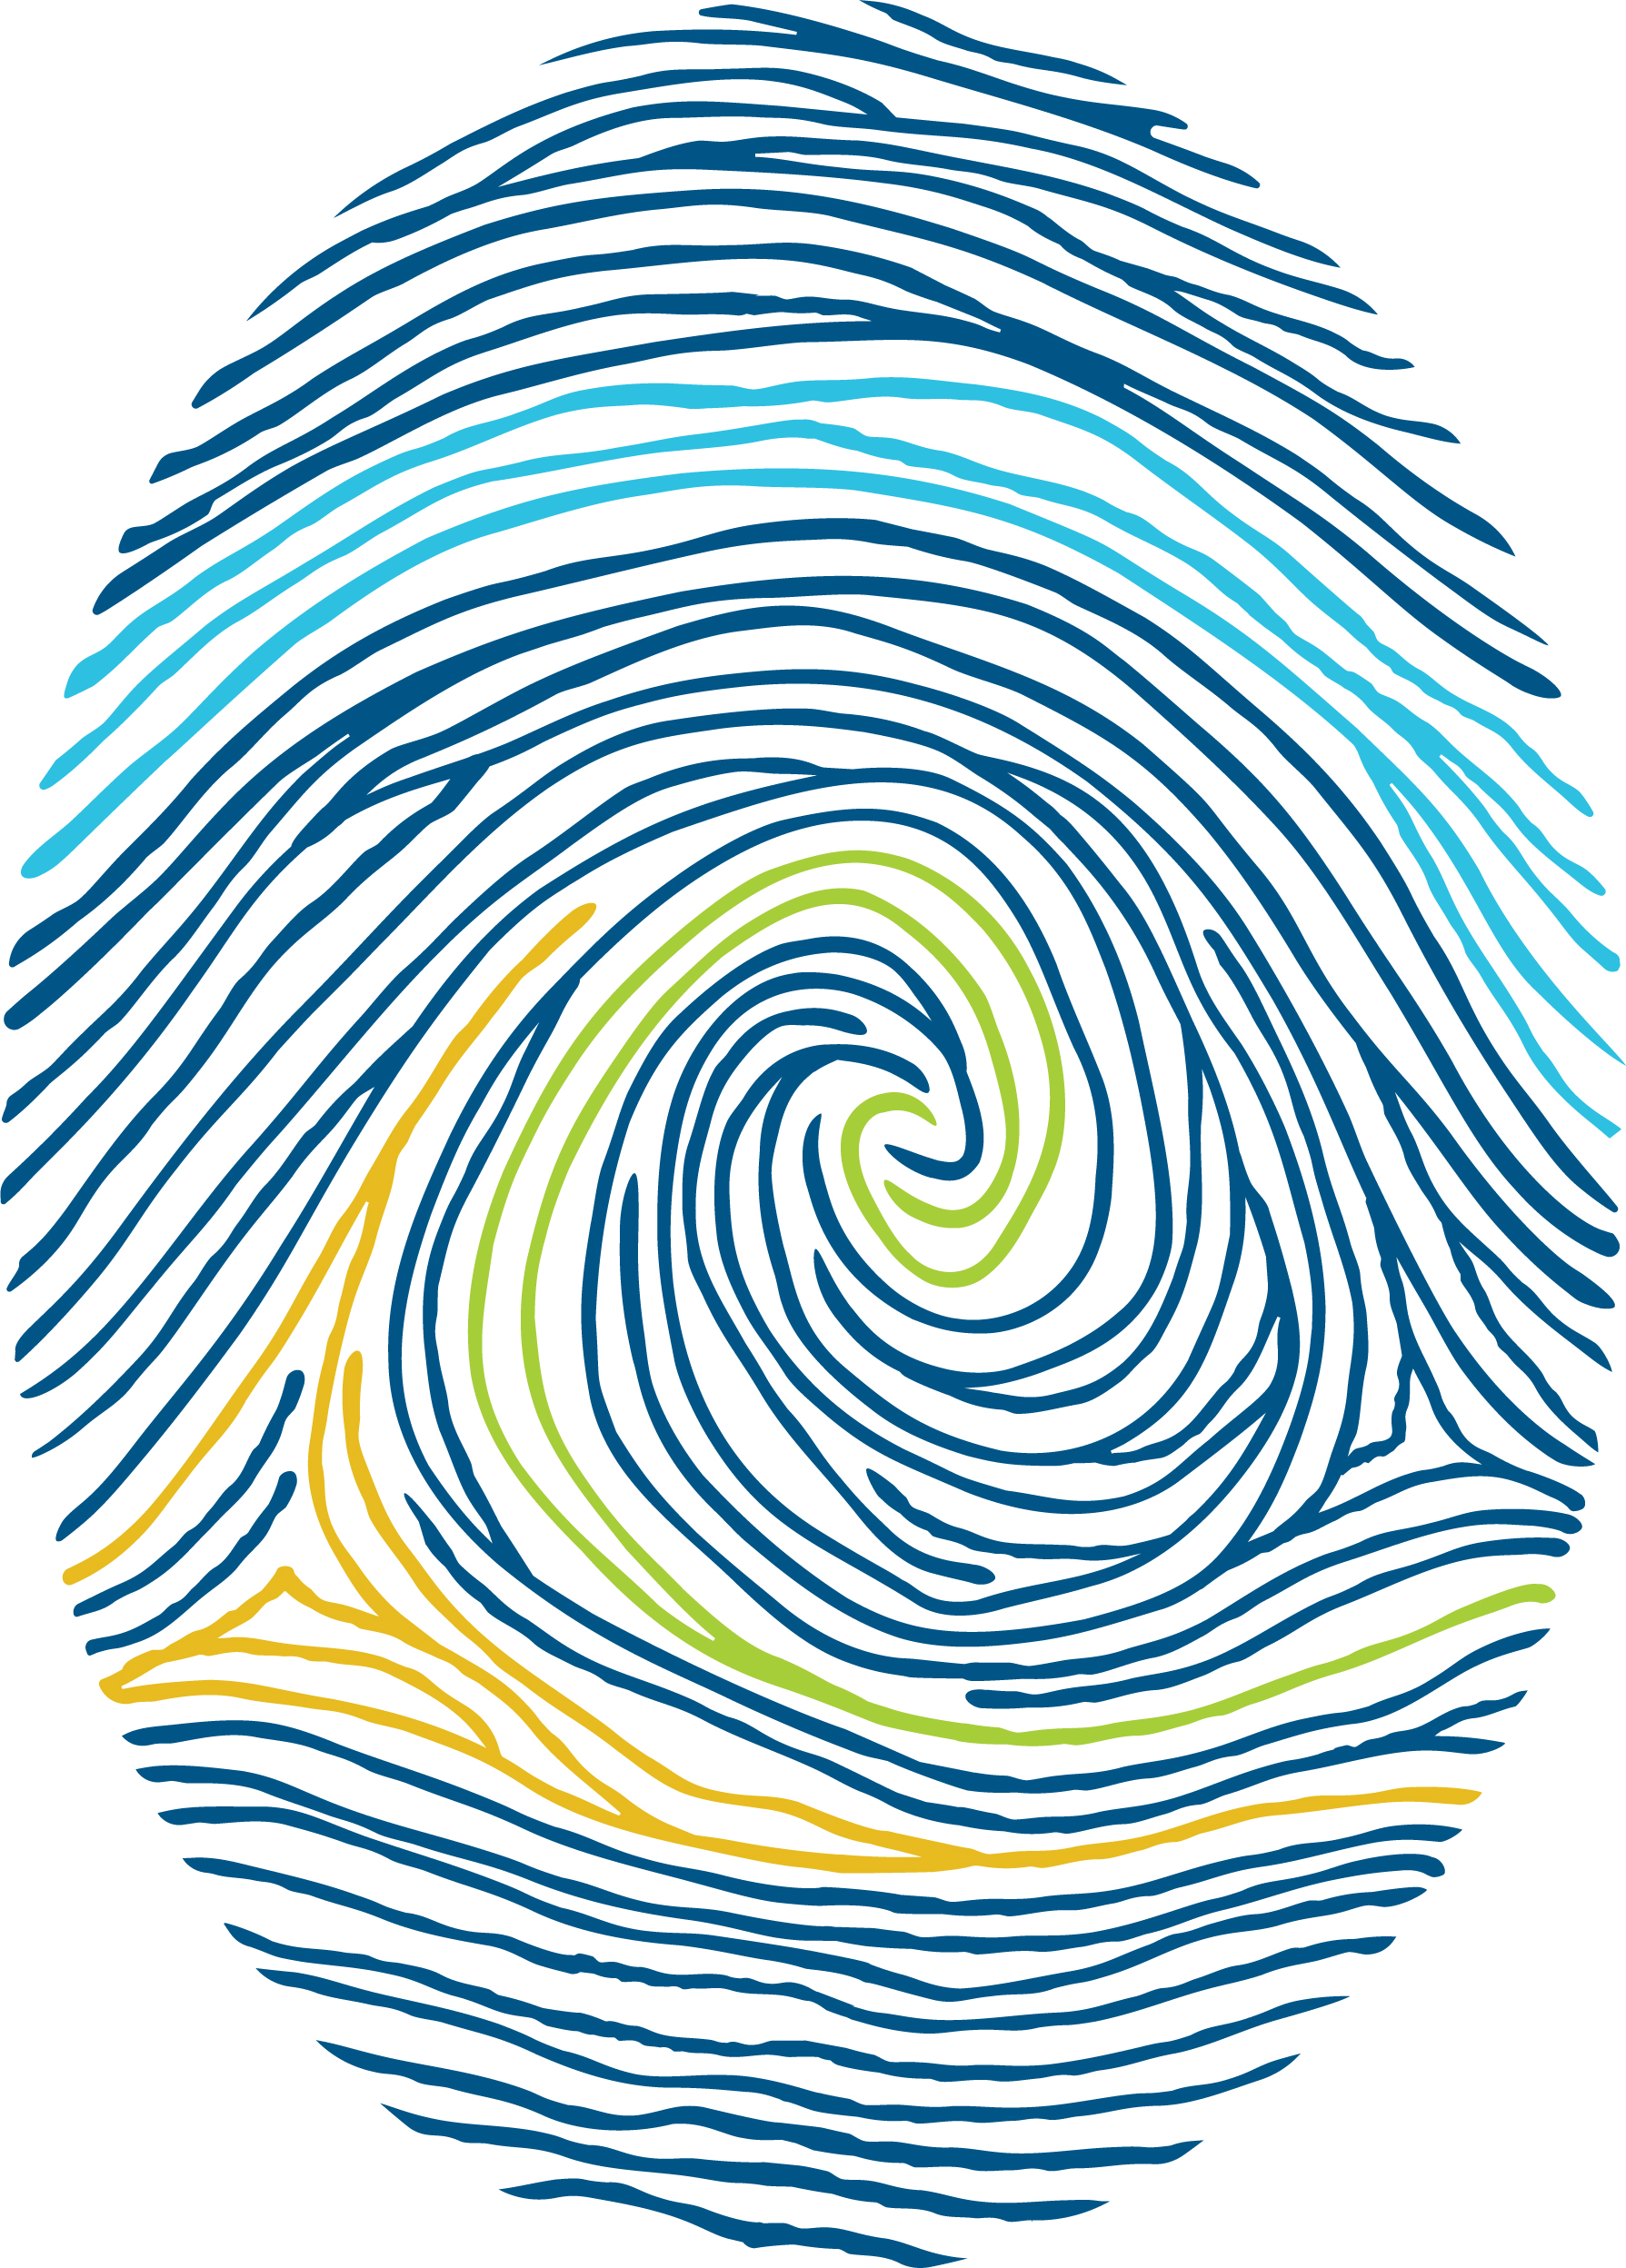 Colour fingerprint graphic